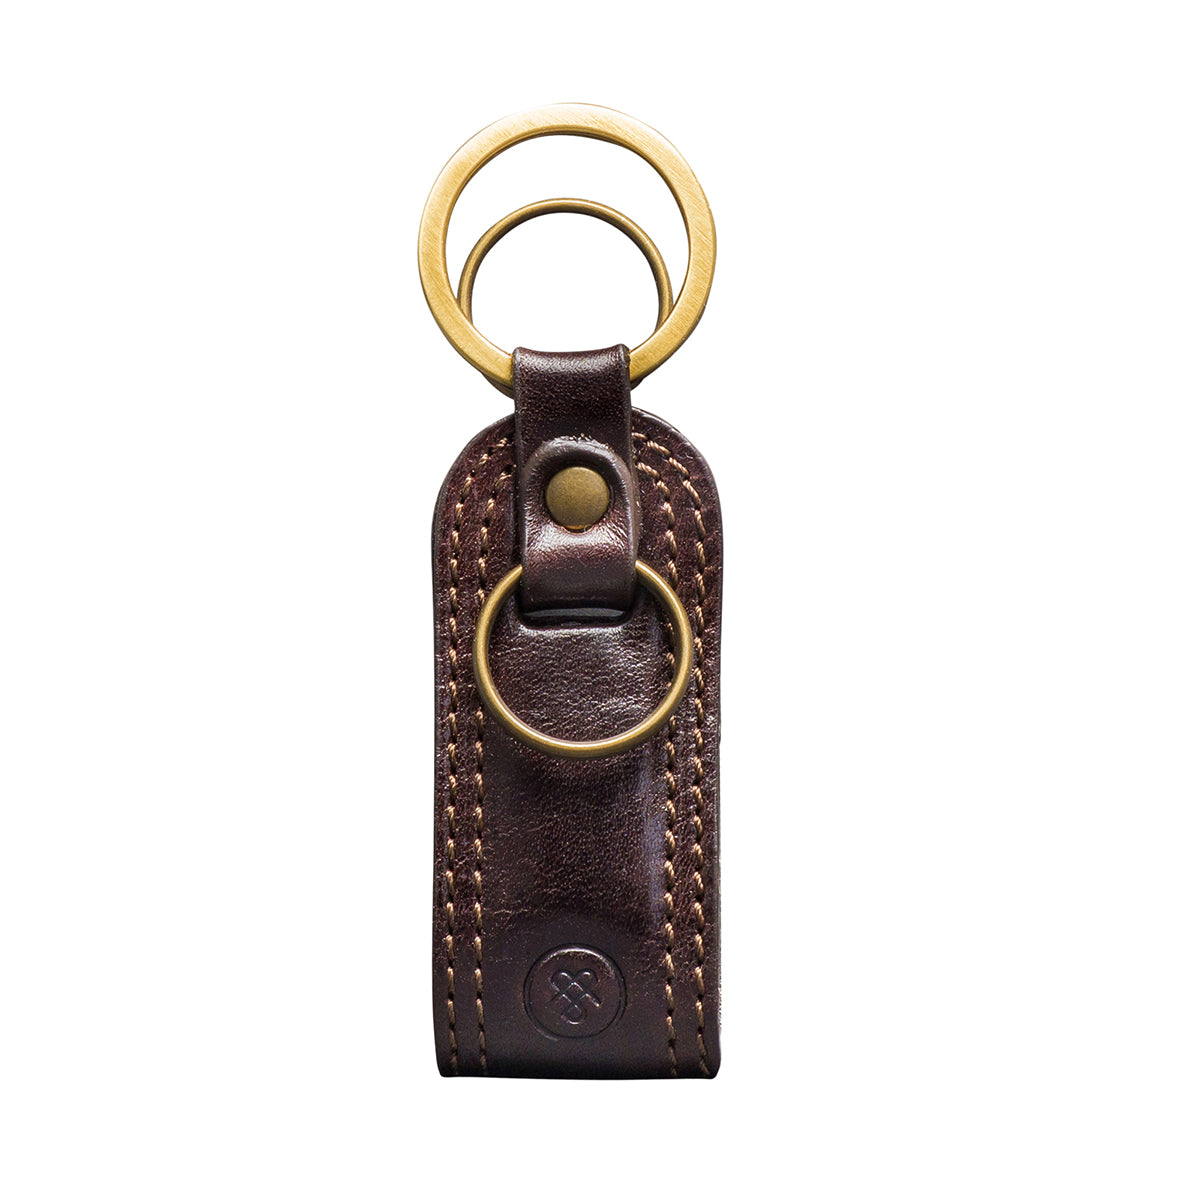 Image 1 of the 'Nepi' Dark Chocolate Veg-Tanned Leather Key Ring